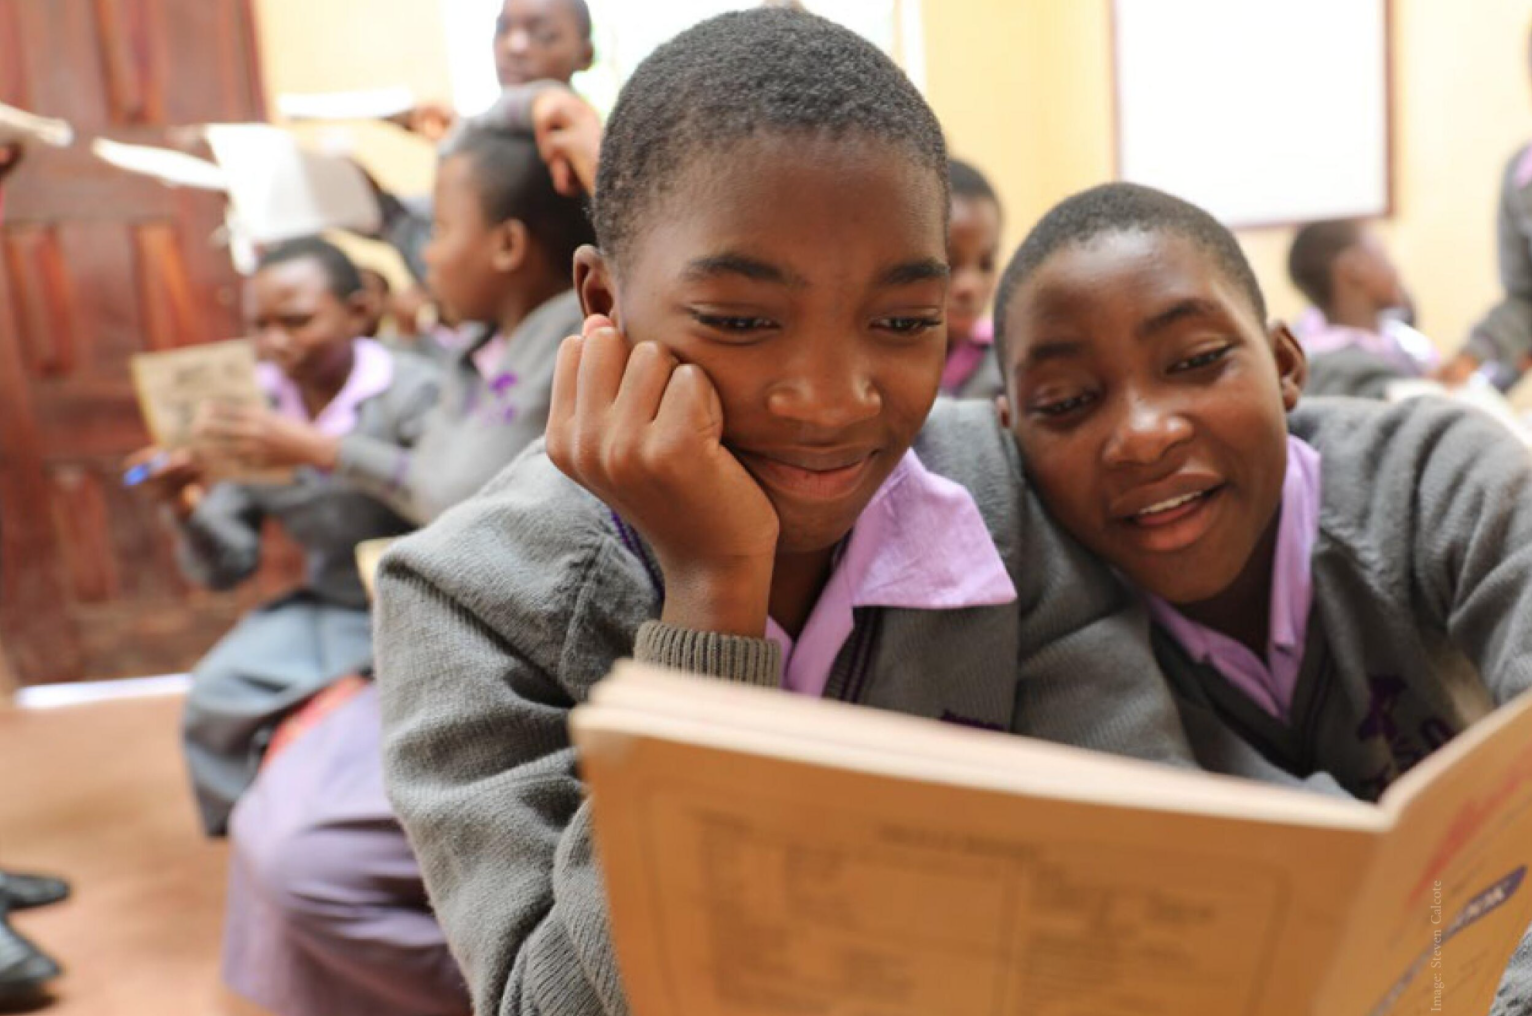 GO Grant Helps Build Model for Library System in Malawi